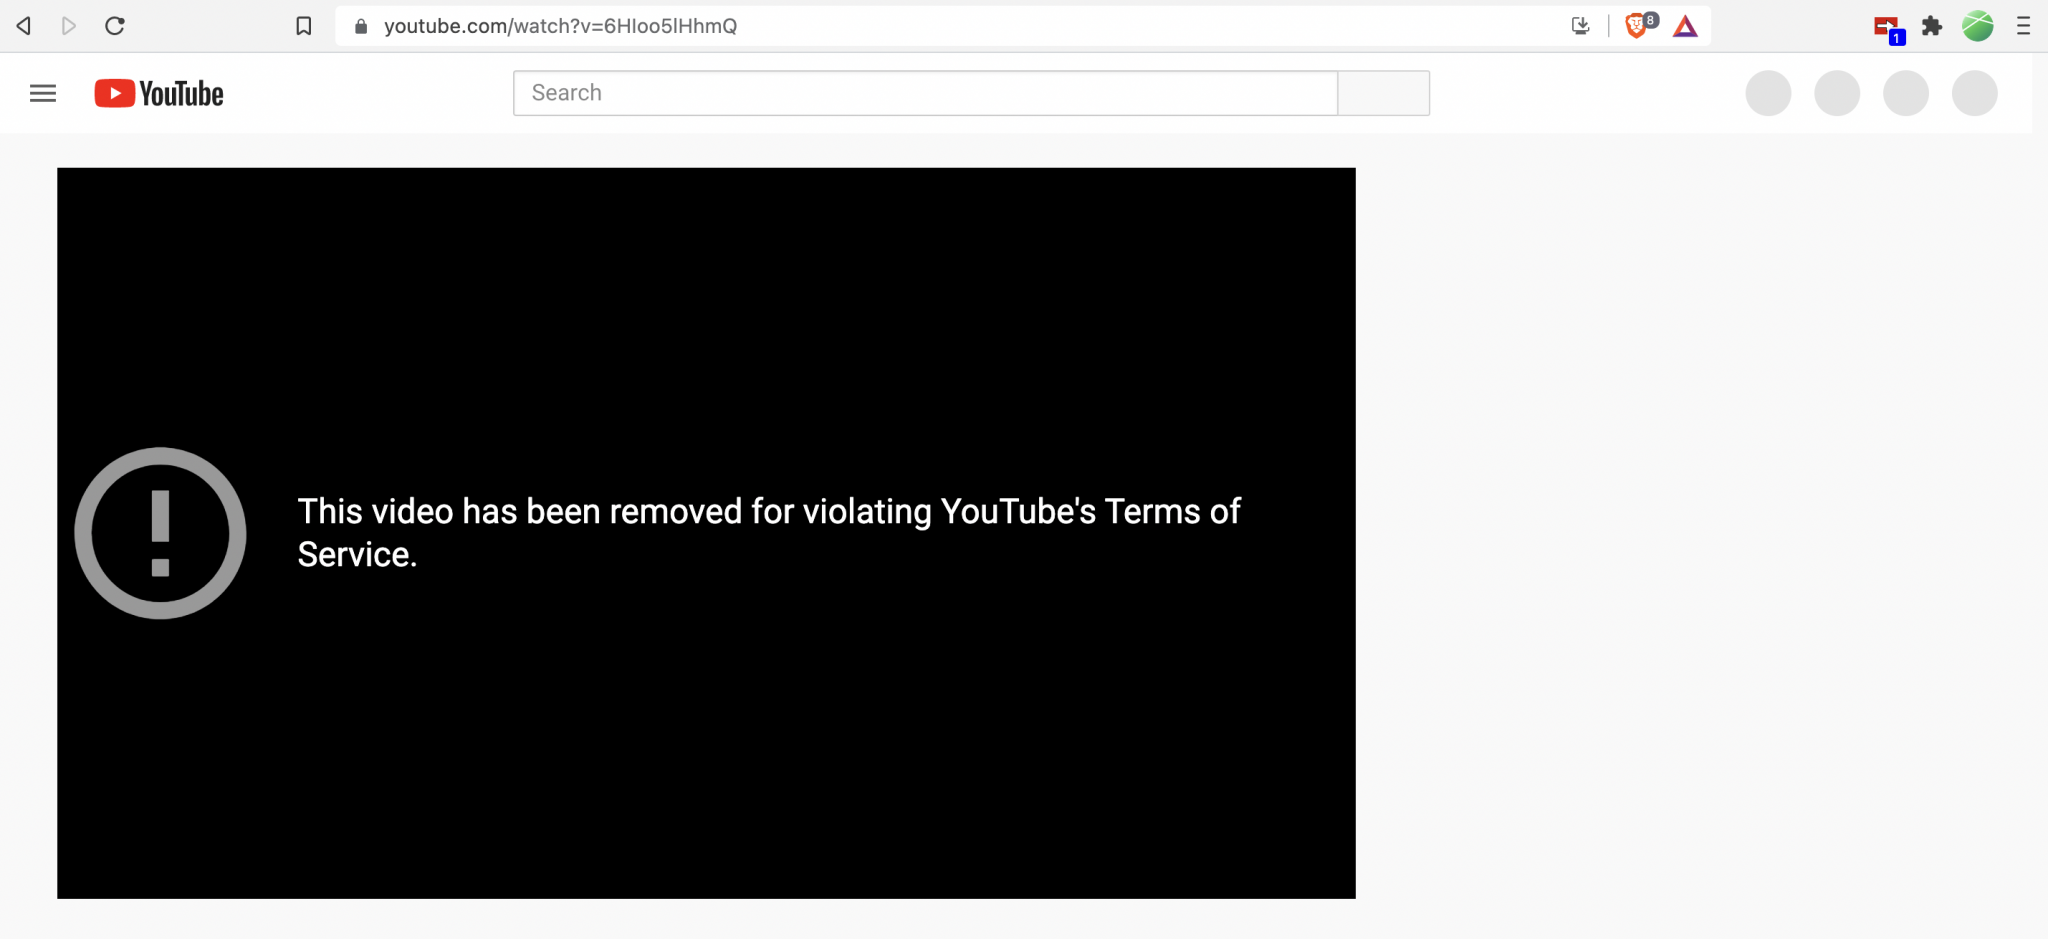 TubeShift makes it easy to find censored YouTube videos on Odysee, Rumble, BitChute and more